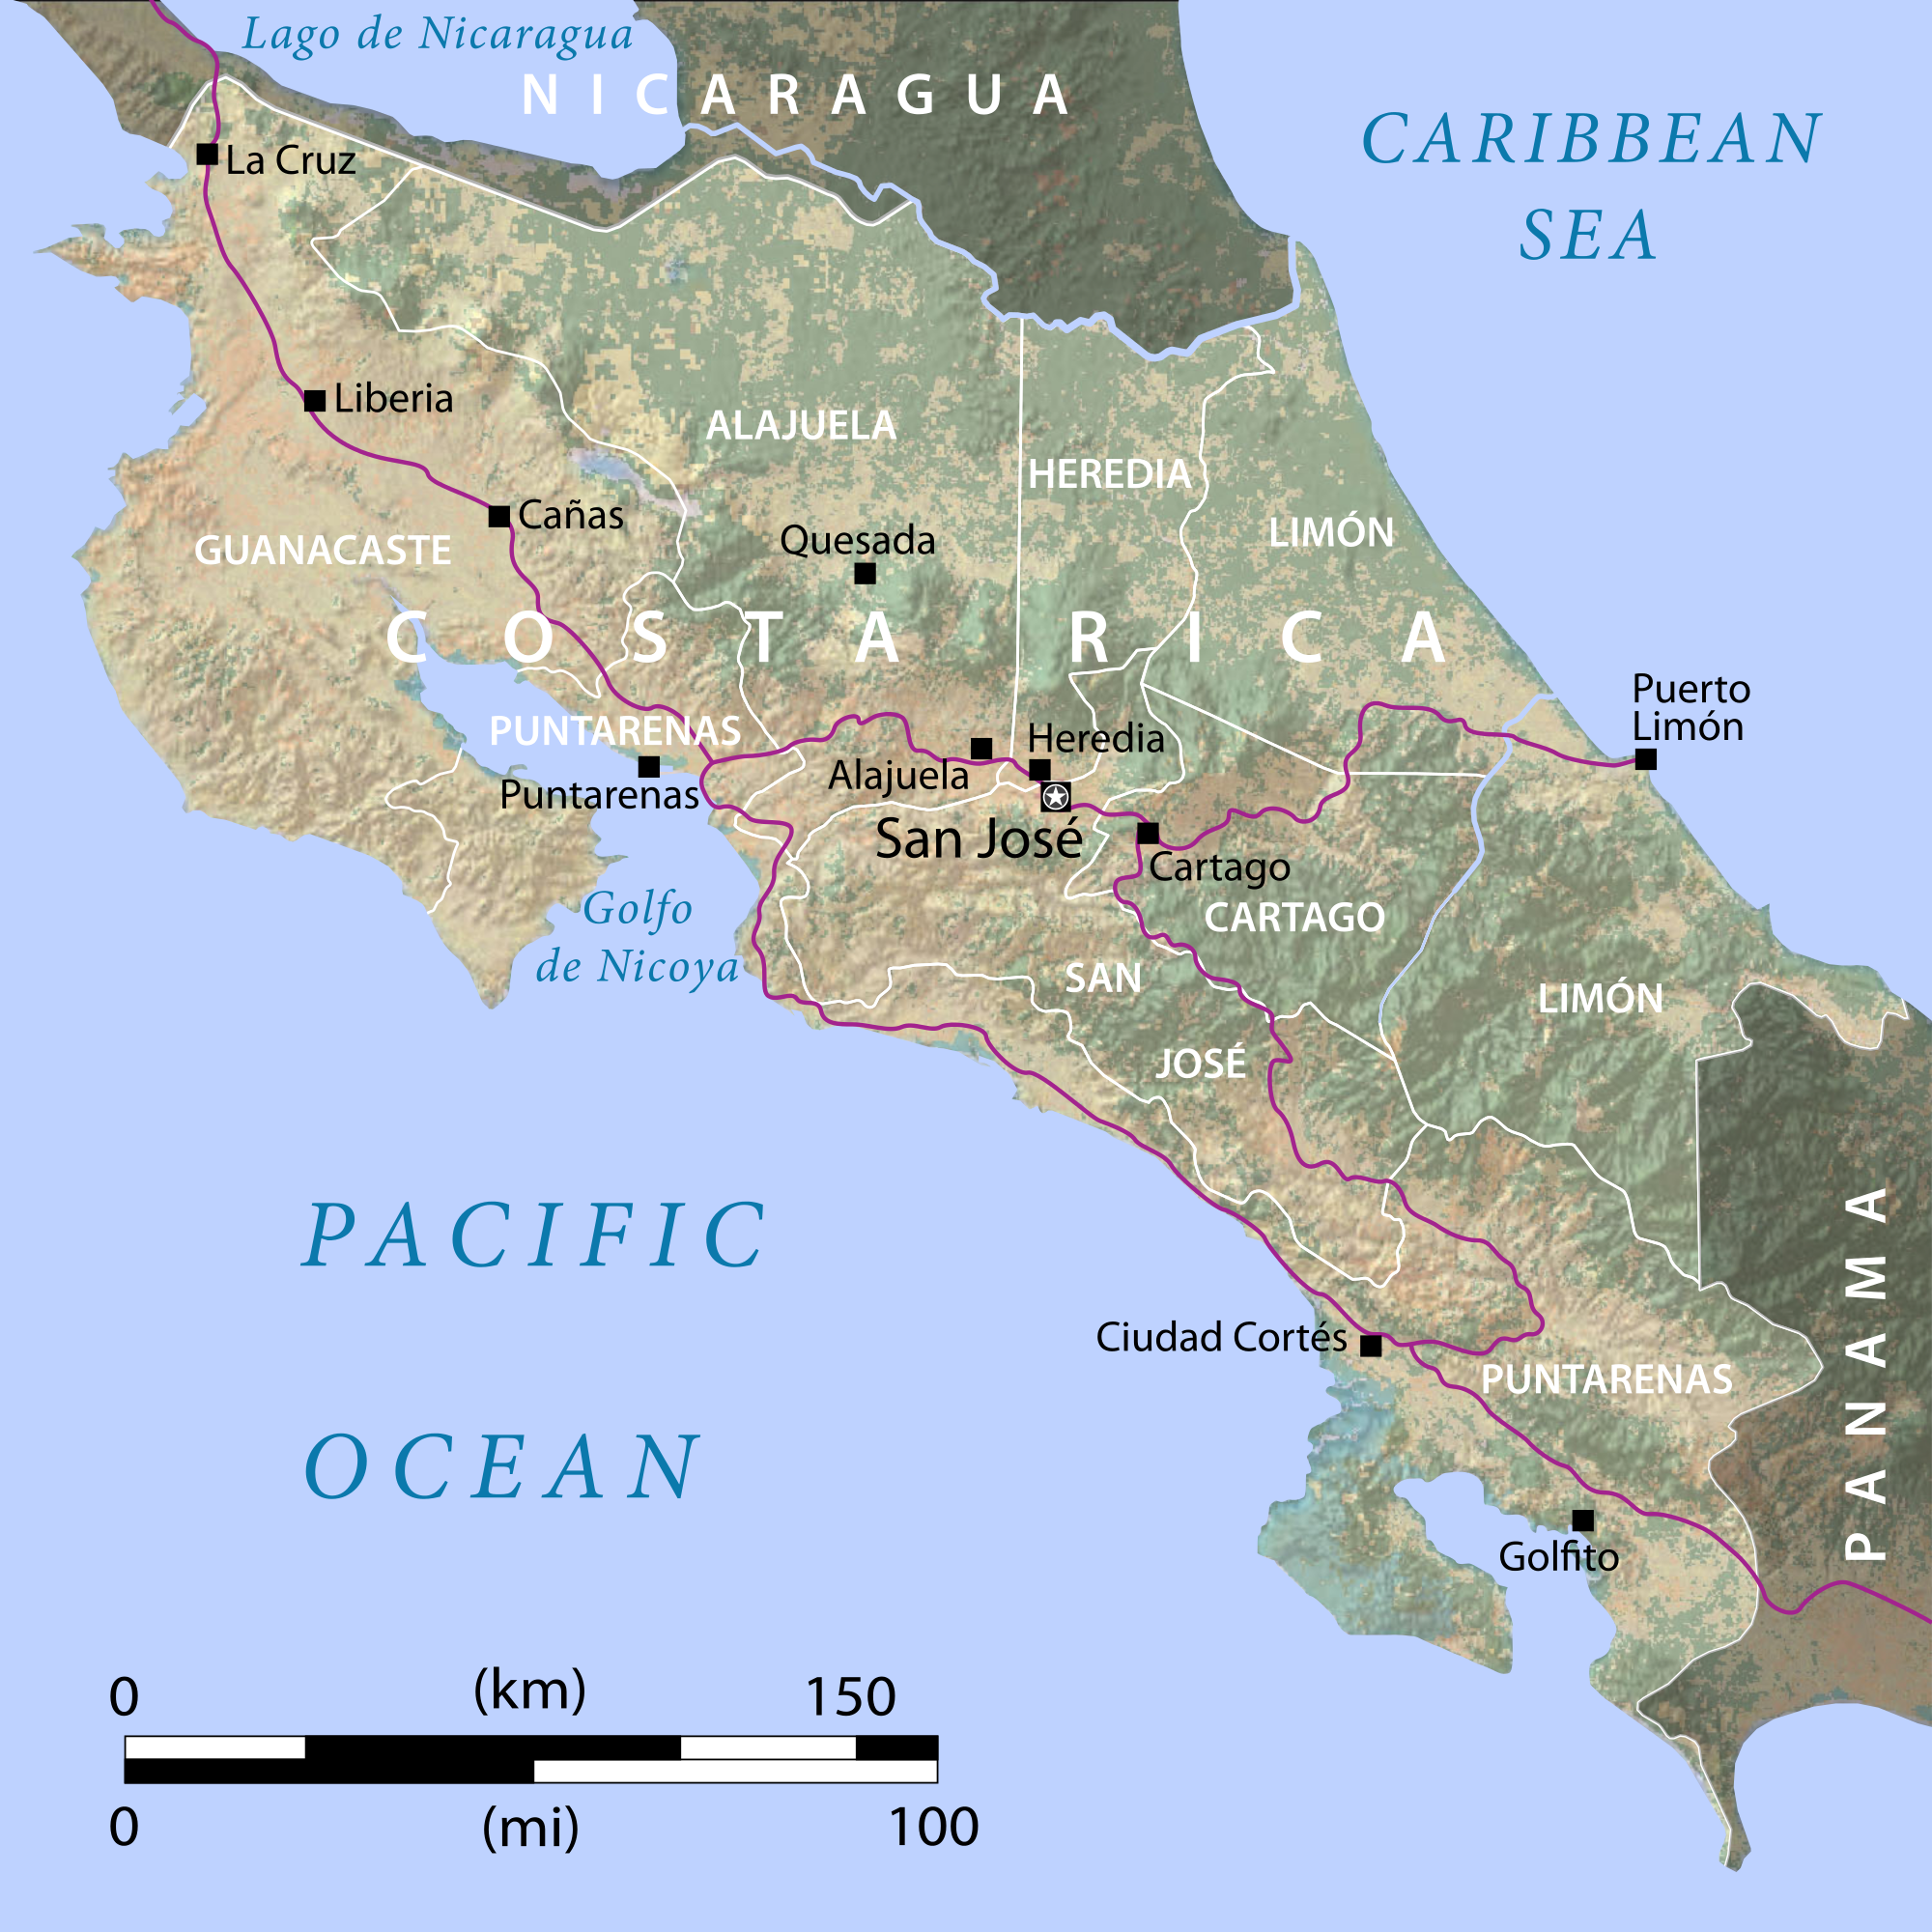 Costa rica wikipedia the free encyclopedia costa rica costa rica wikipedia the free encyclopedia gumiabroncs Images